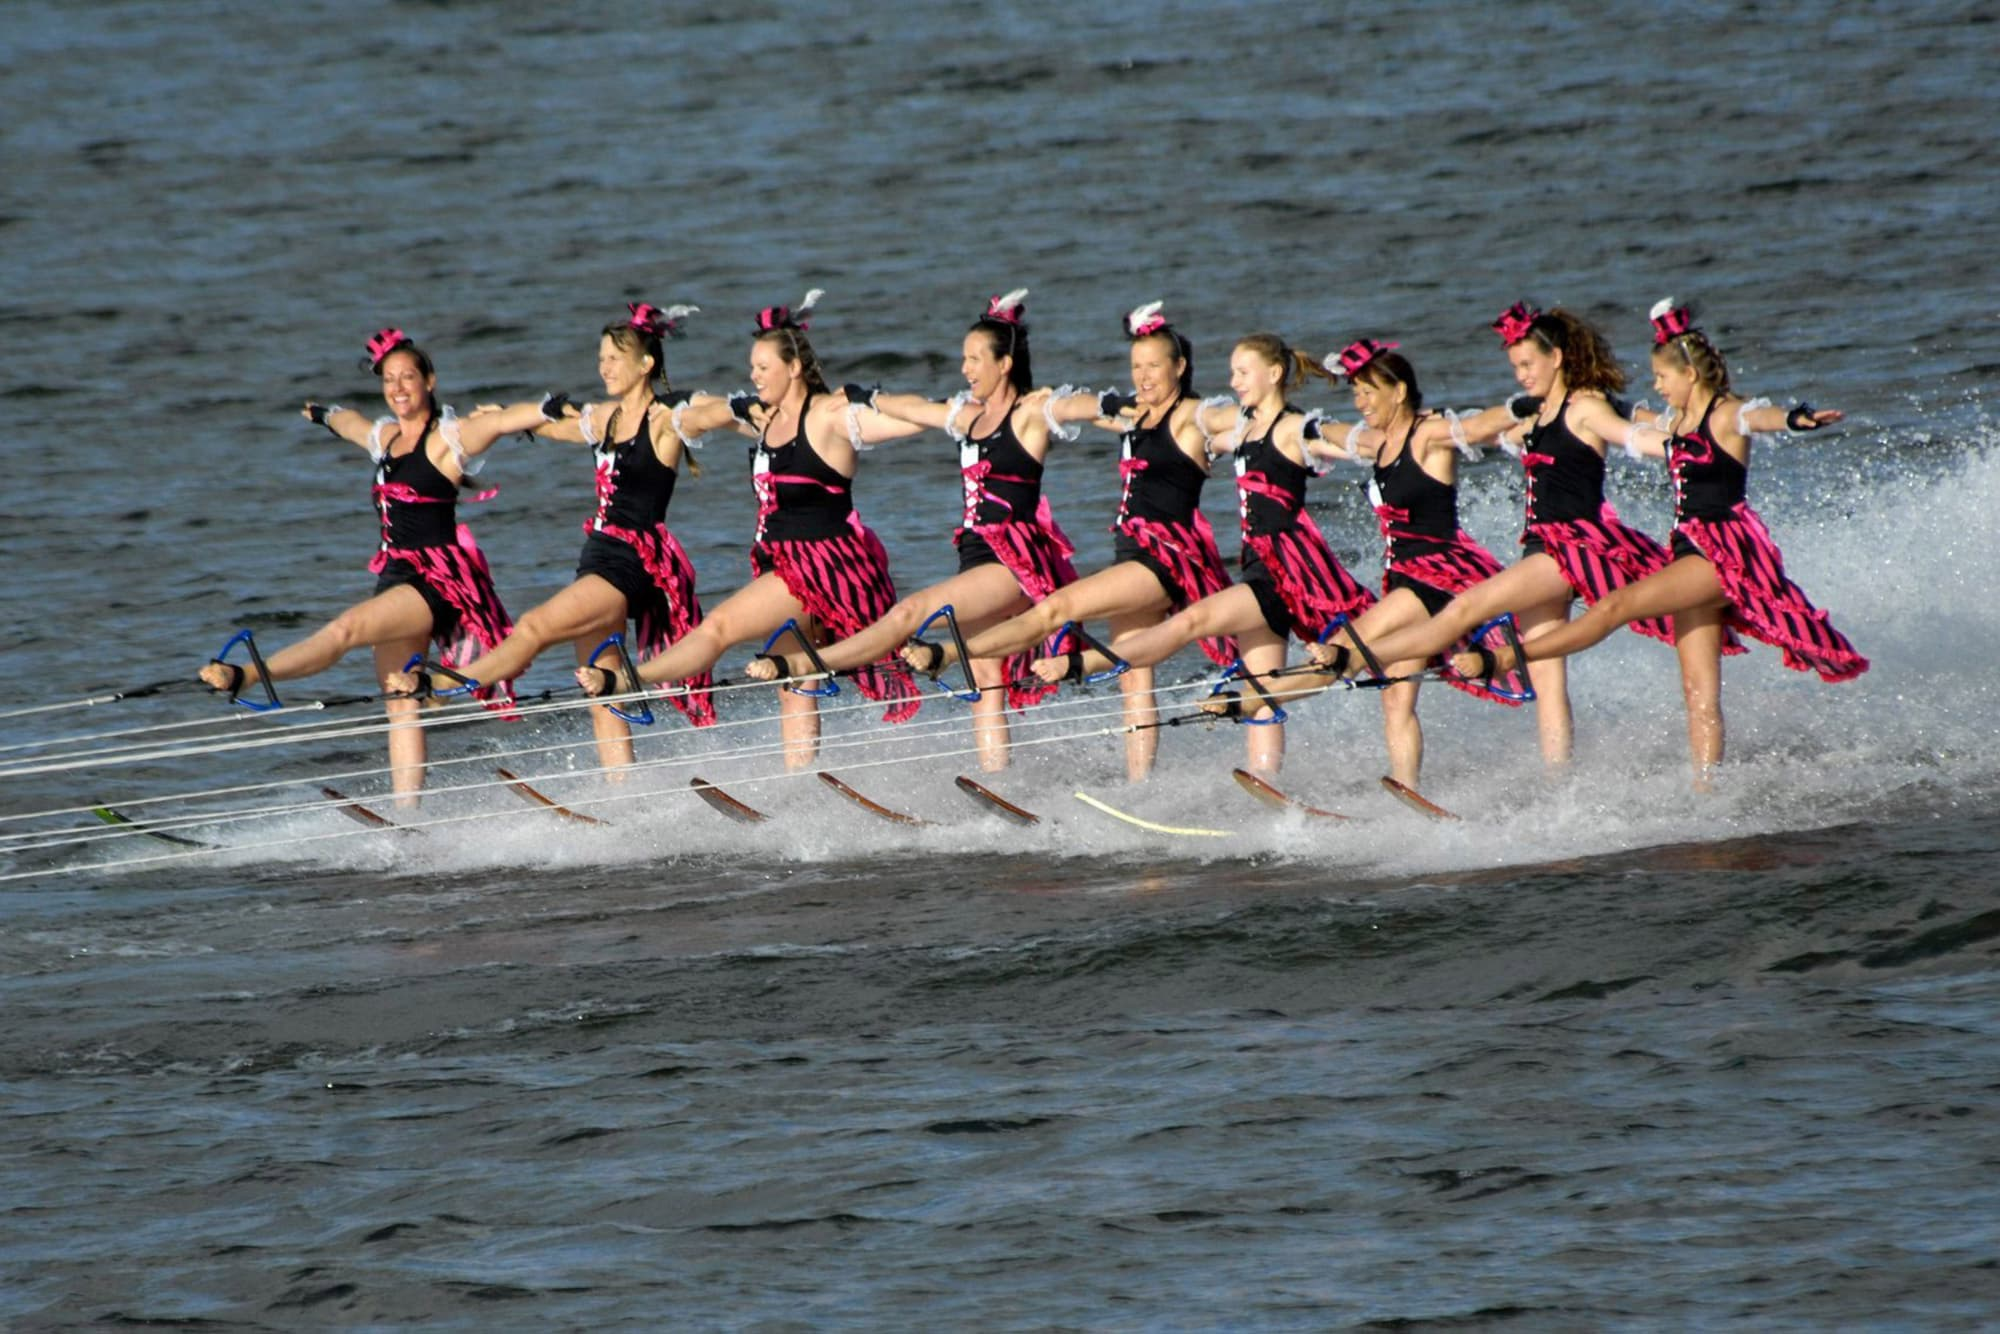 9 show ski females on lake in Winter Haven, FL during Cypress Gardens Water Ski Team show.